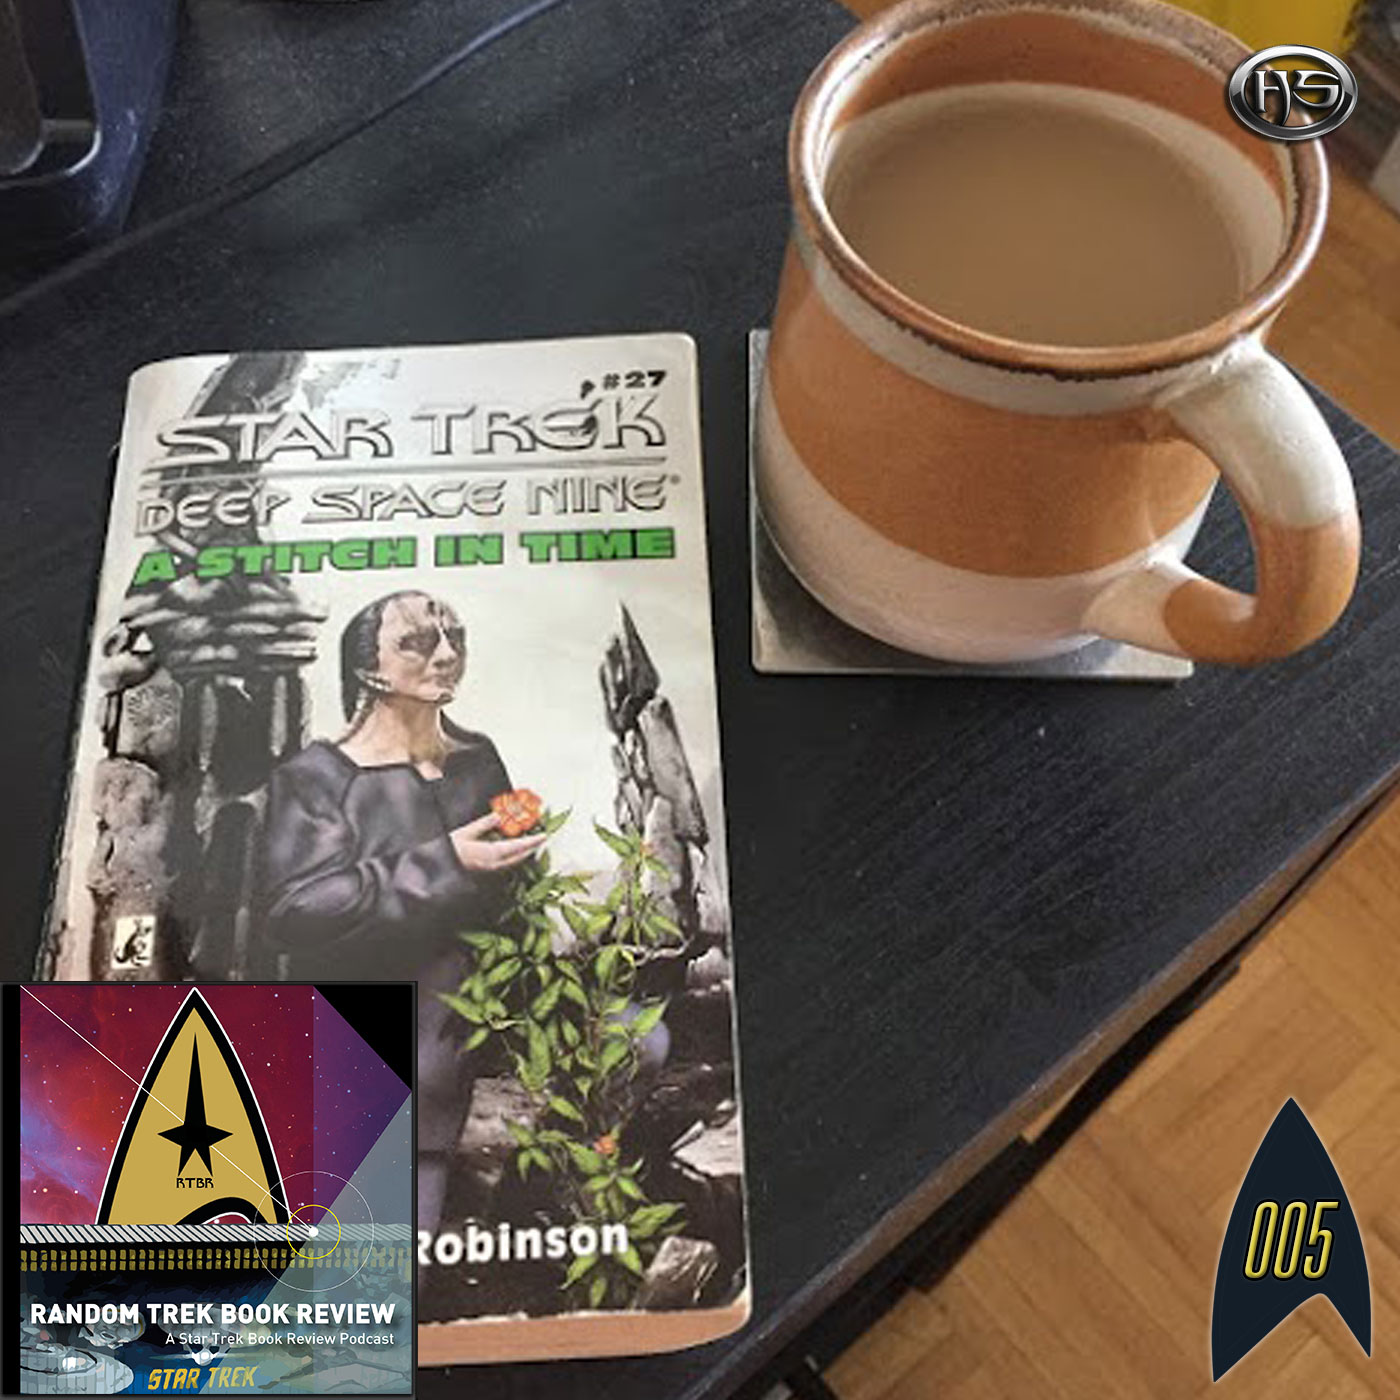 Random Trek Book Review Episode 5